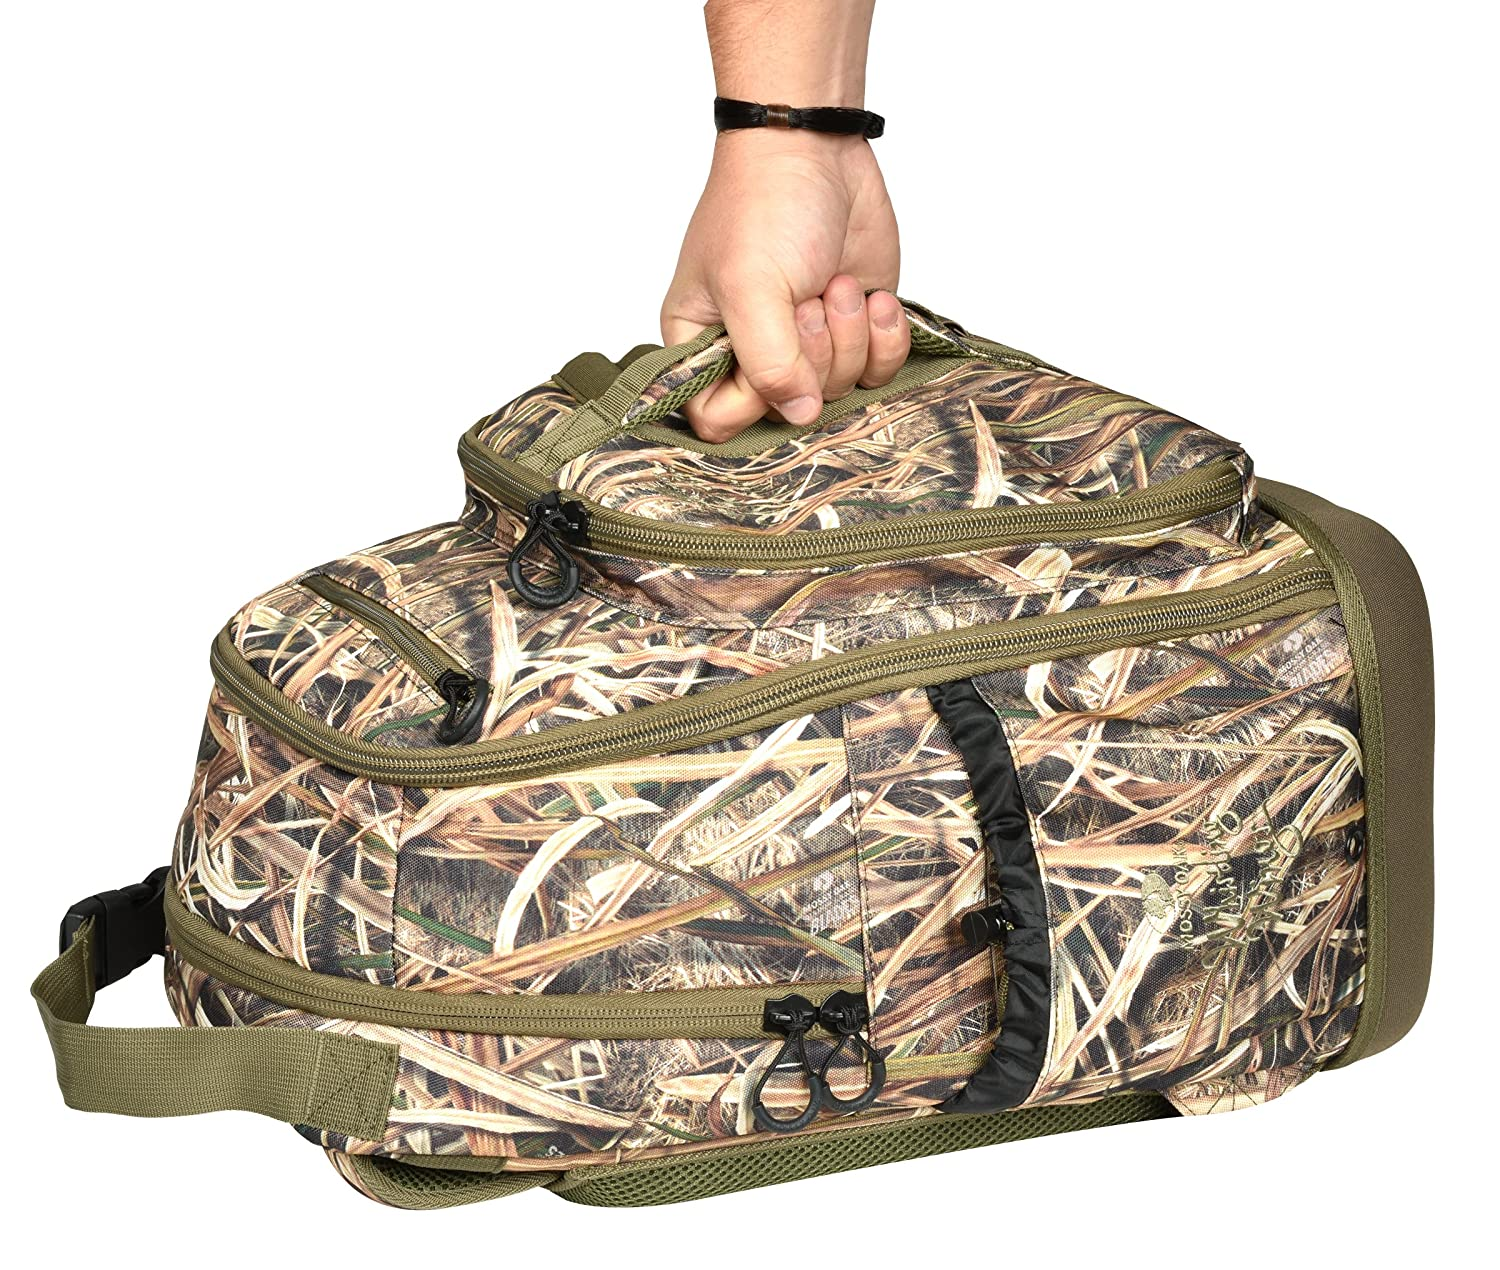 b5fc6ed355 Amazon.com  Mossy Oak Drawdown Timber Bag